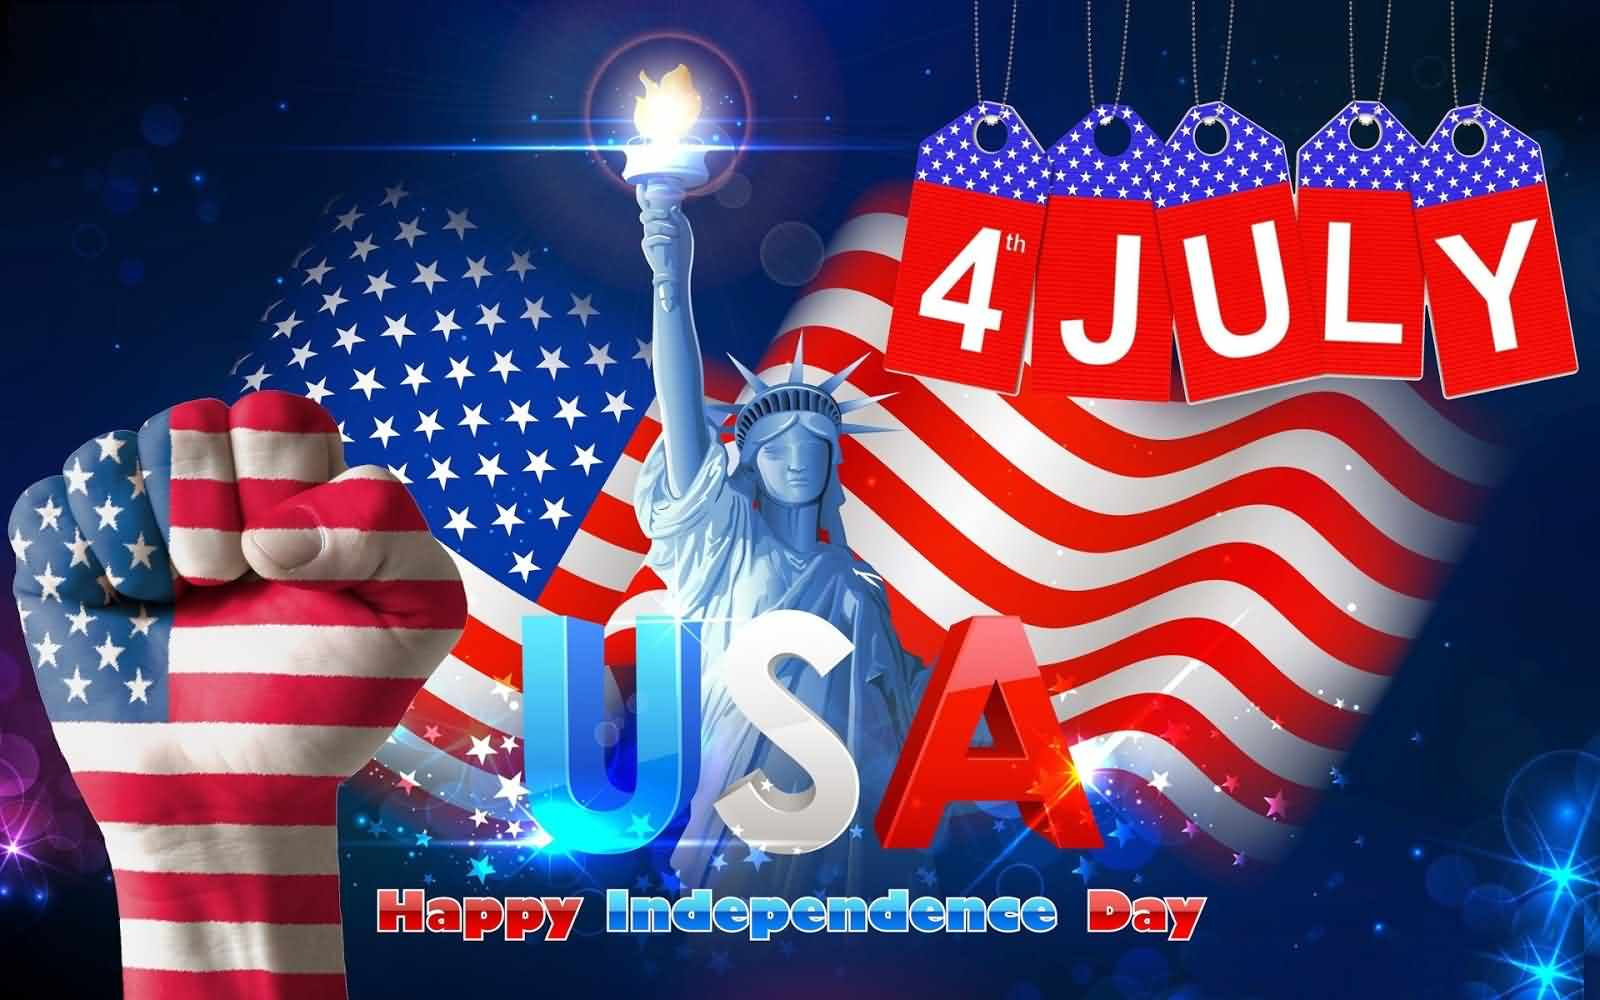 Happy Independence Day 4 July Wishes Wallpaper